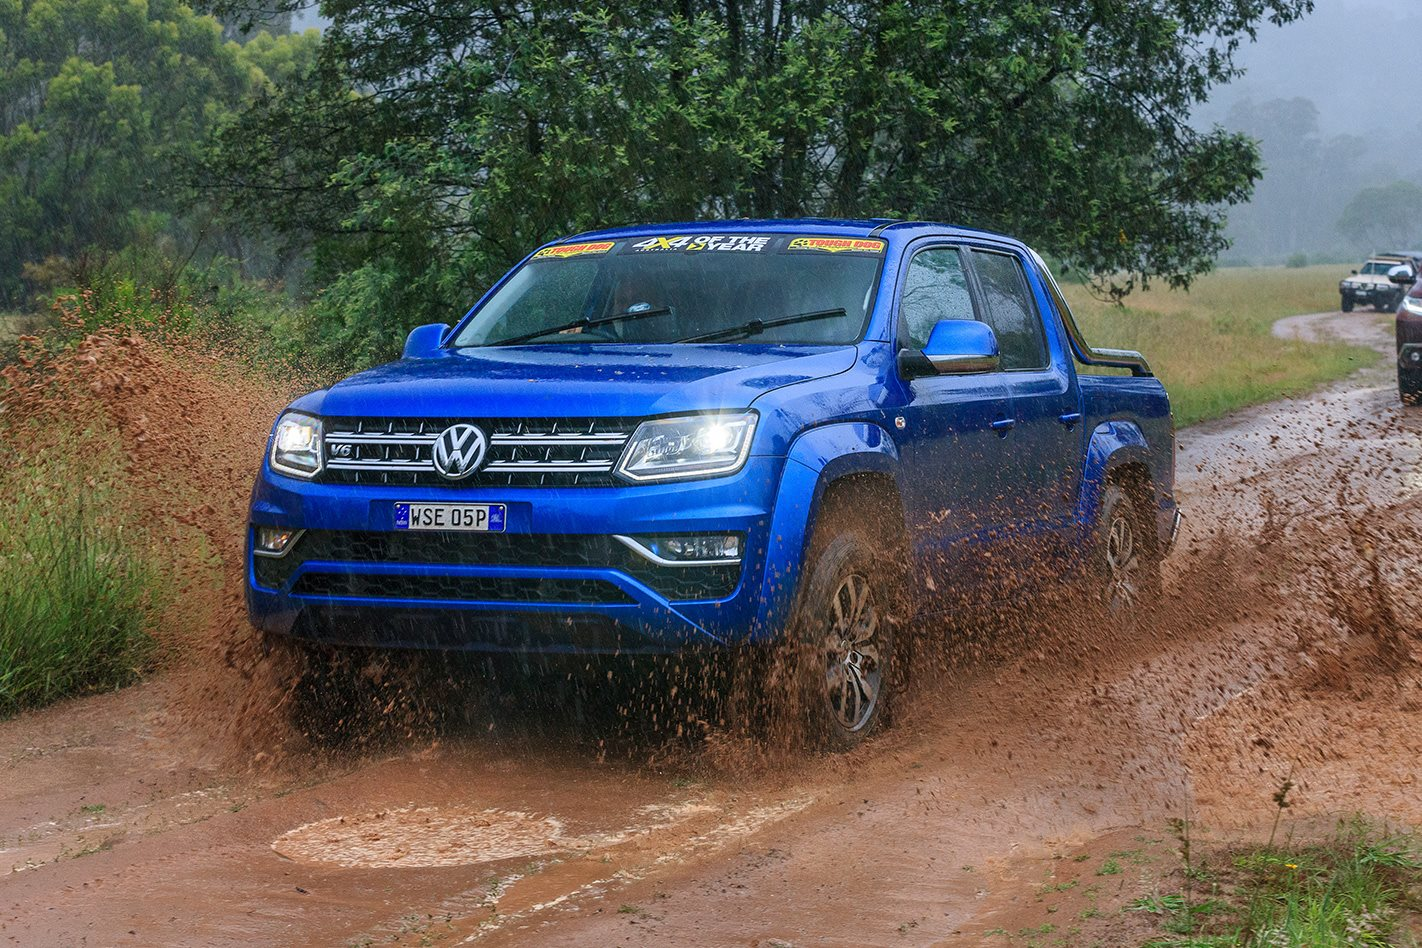 2017 4x4oty finalist volkswagen amarok v6 4x4 australia. Black Bedroom Furniture Sets. Home Design Ideas